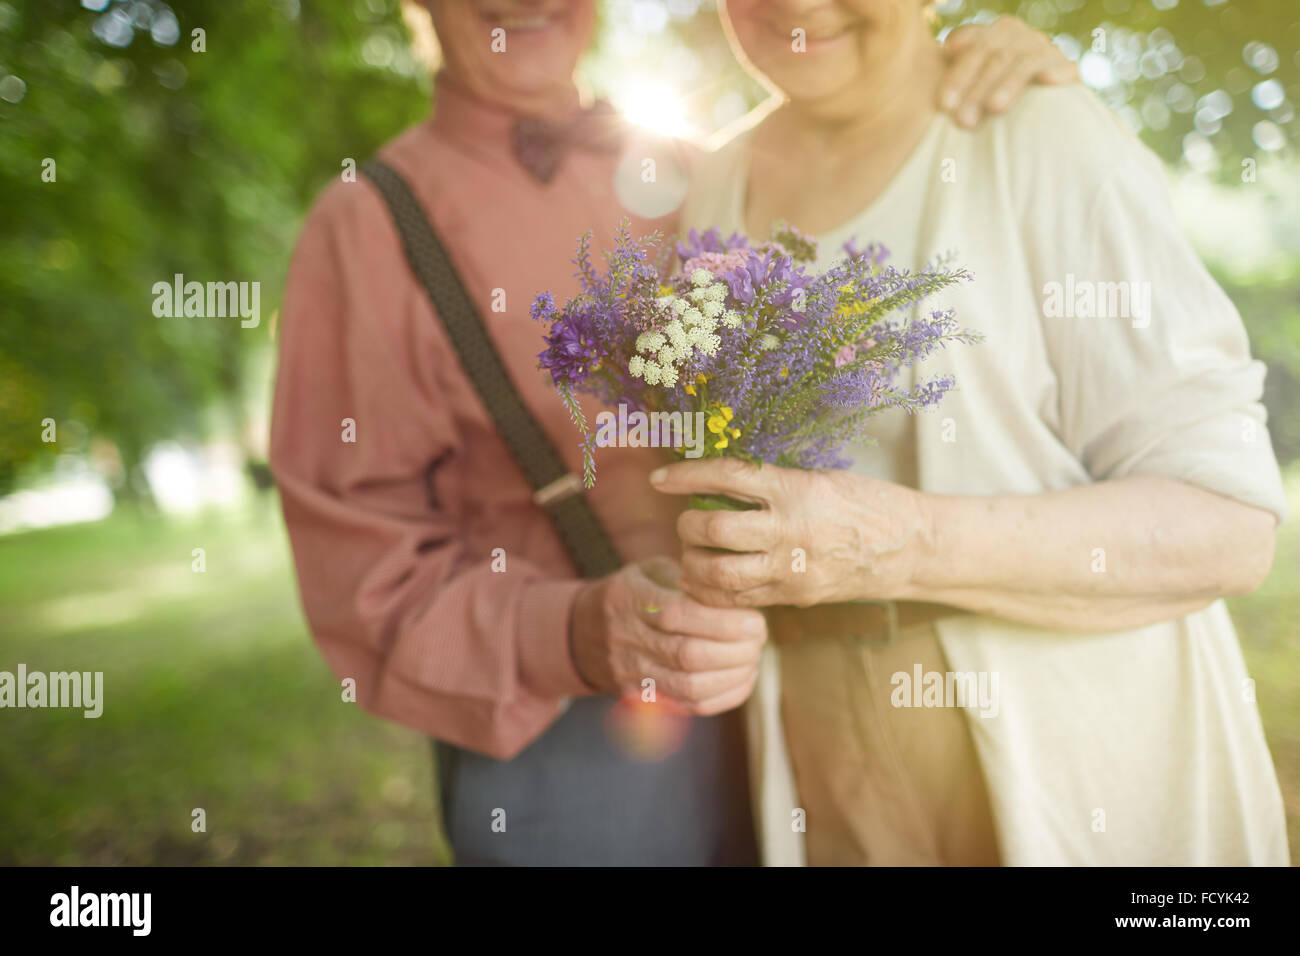 Romantic bouquet in hands of senior valentines - Stock Image